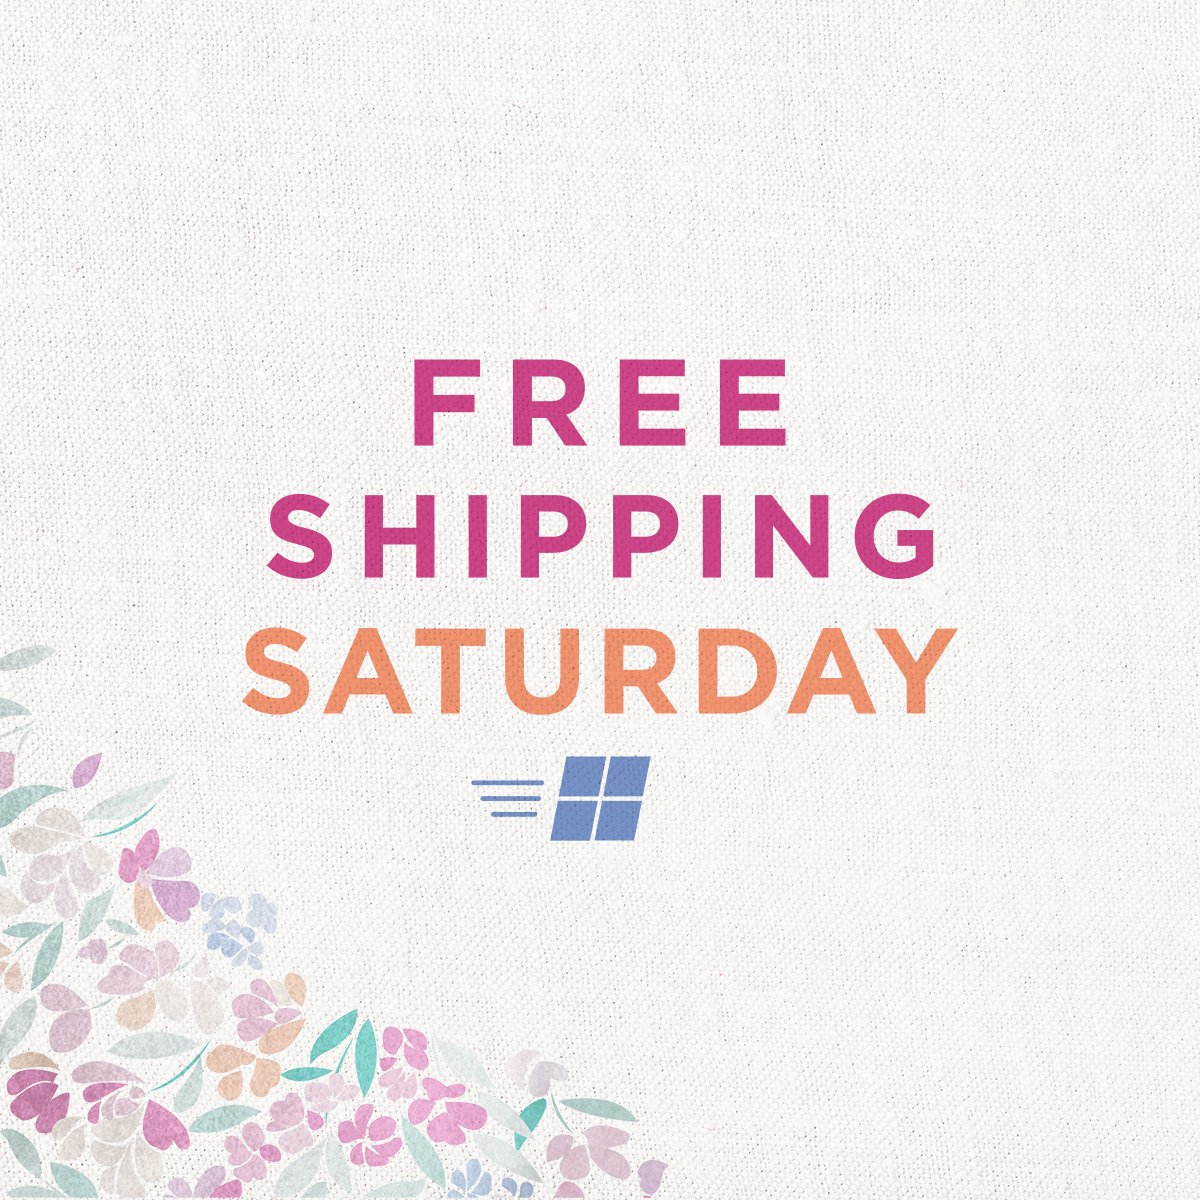 Free Shipping on the Lisa Rinna Collection at @QVC!  Today only! April 7th! https://t.co/ckAvkhdfoS https://t.co/XgepNVYGPz